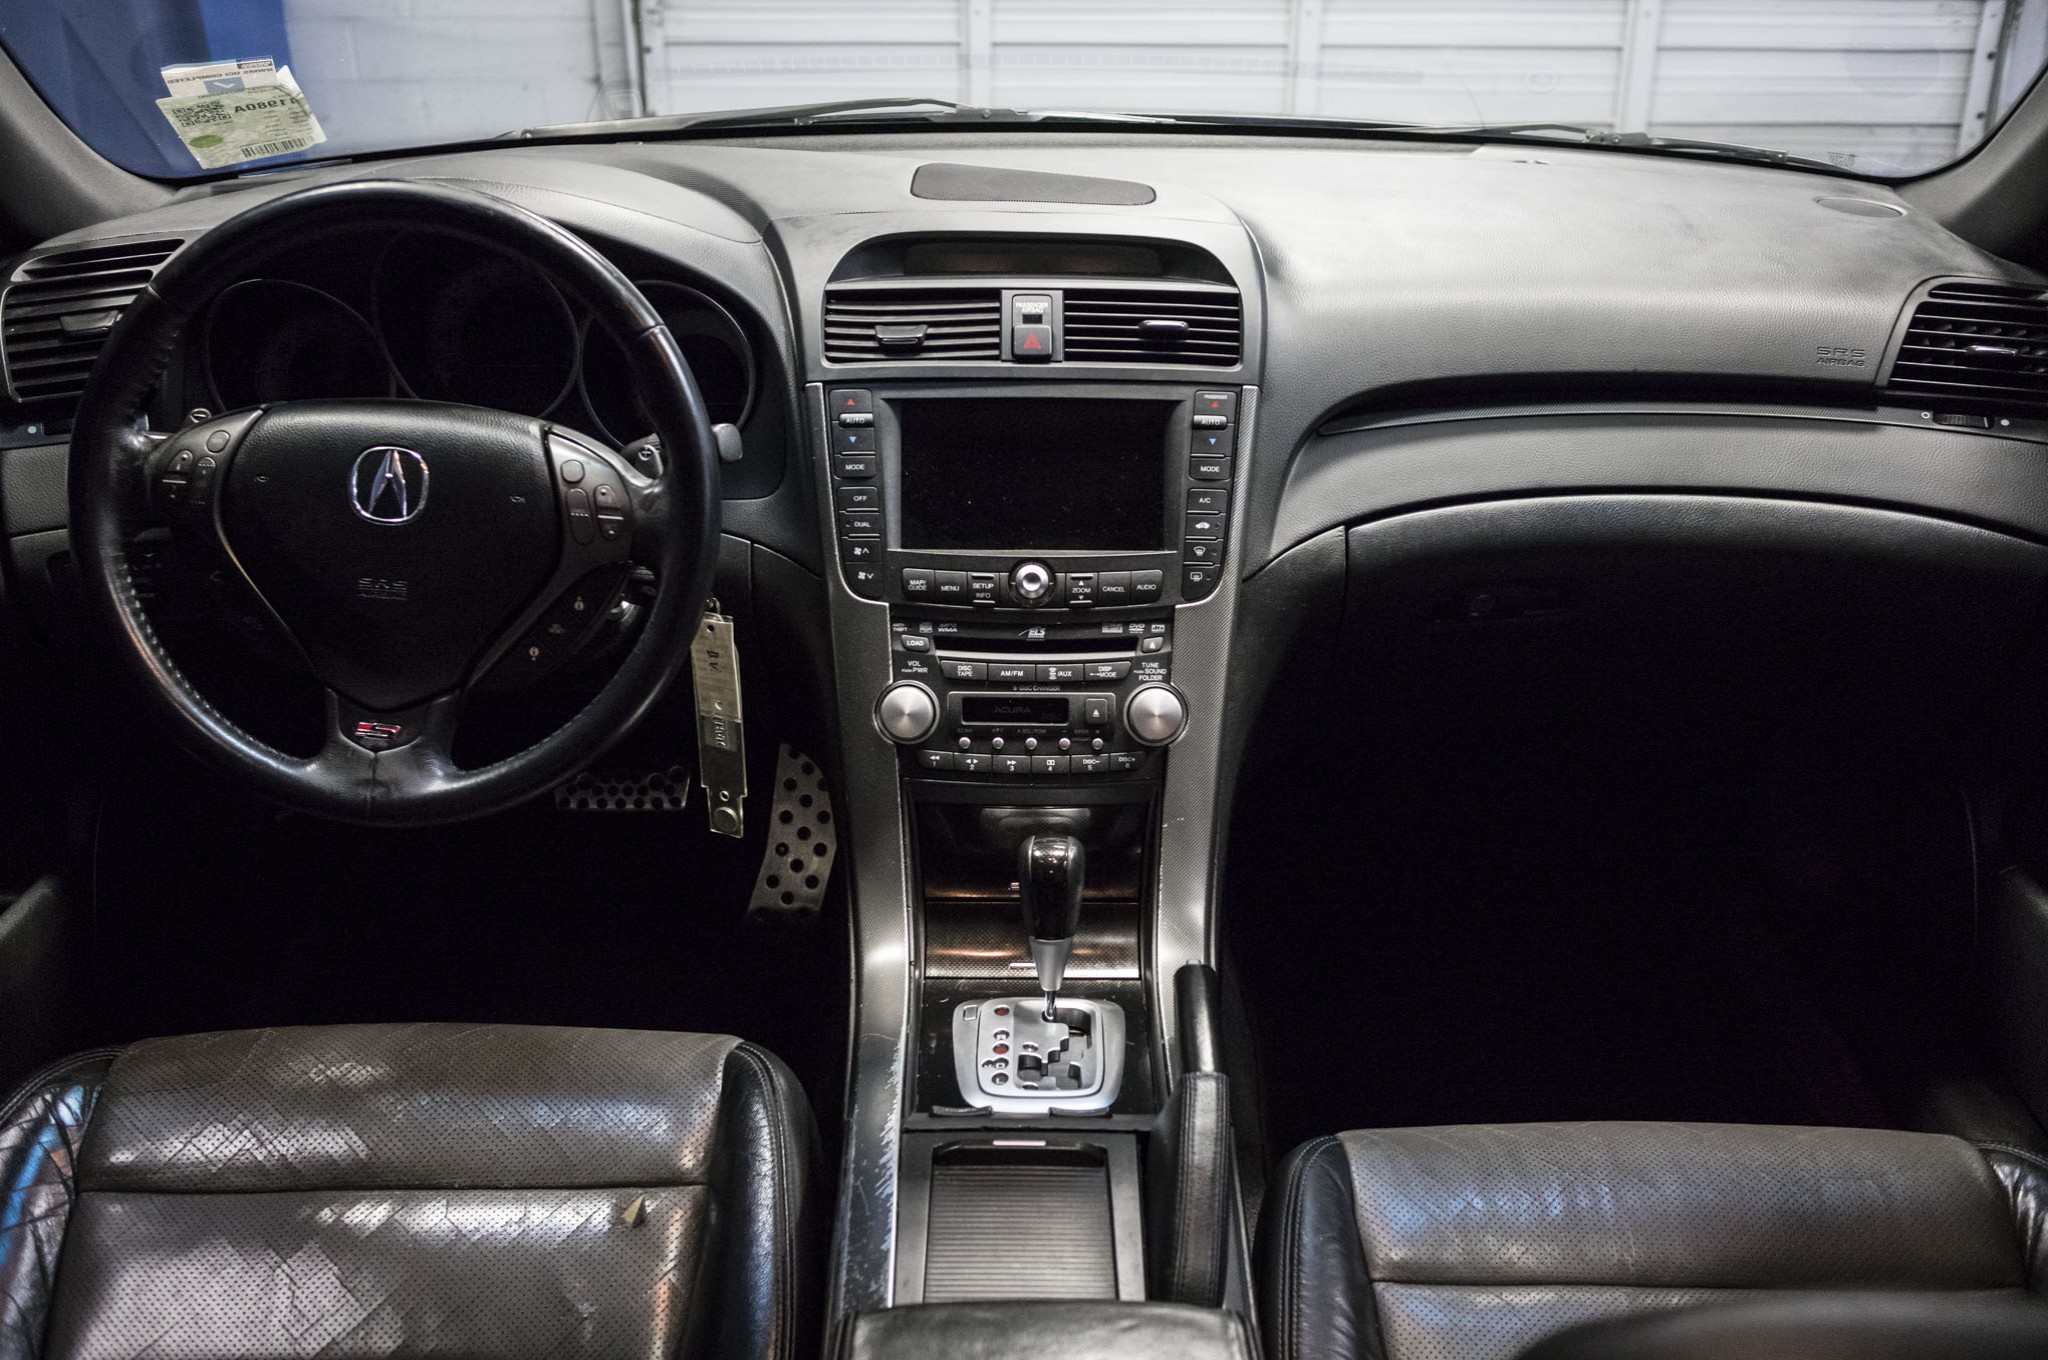 Used 2007 Acura Tl Type S Fwd Sedan For Sale 41980a